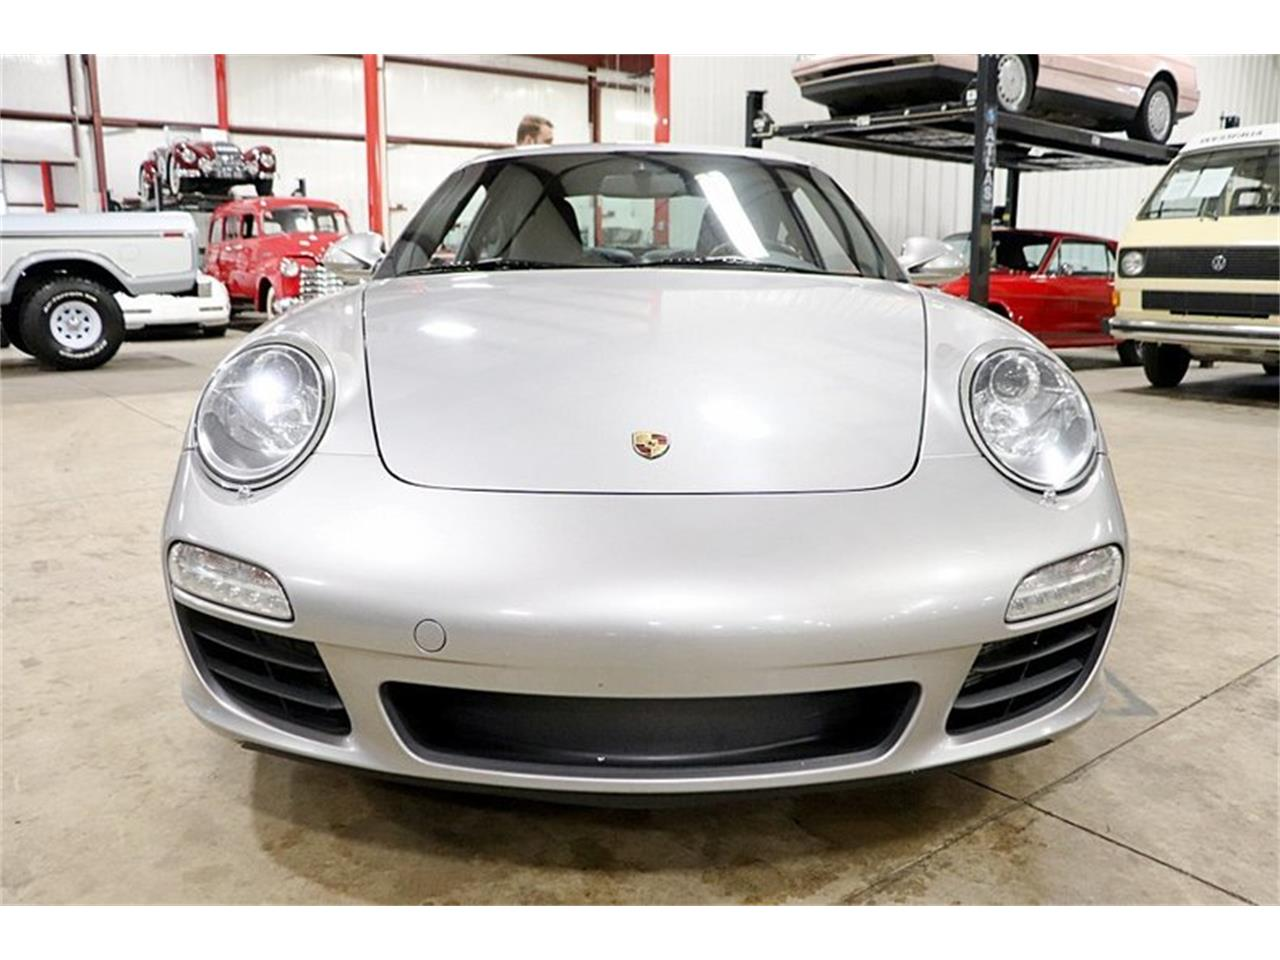 Large Picture of '09 Porsche 911 located in Michigan - $35,900.00 - Q2EE